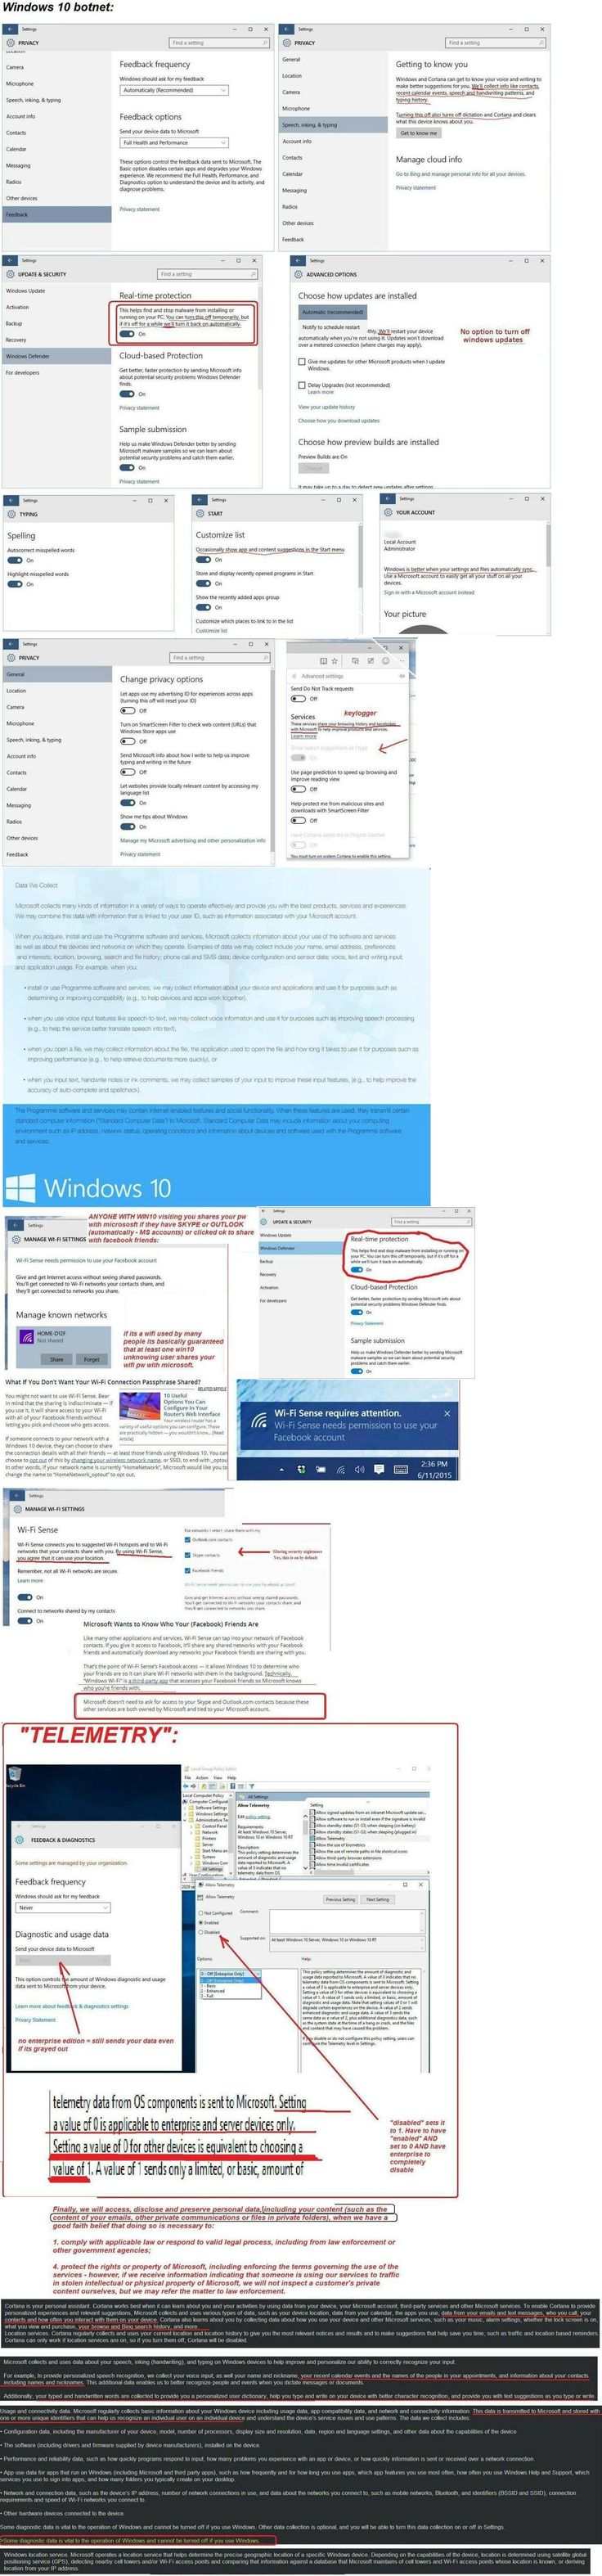 Pay attention when installing Windows 10  -  ms.PNG - Imgur